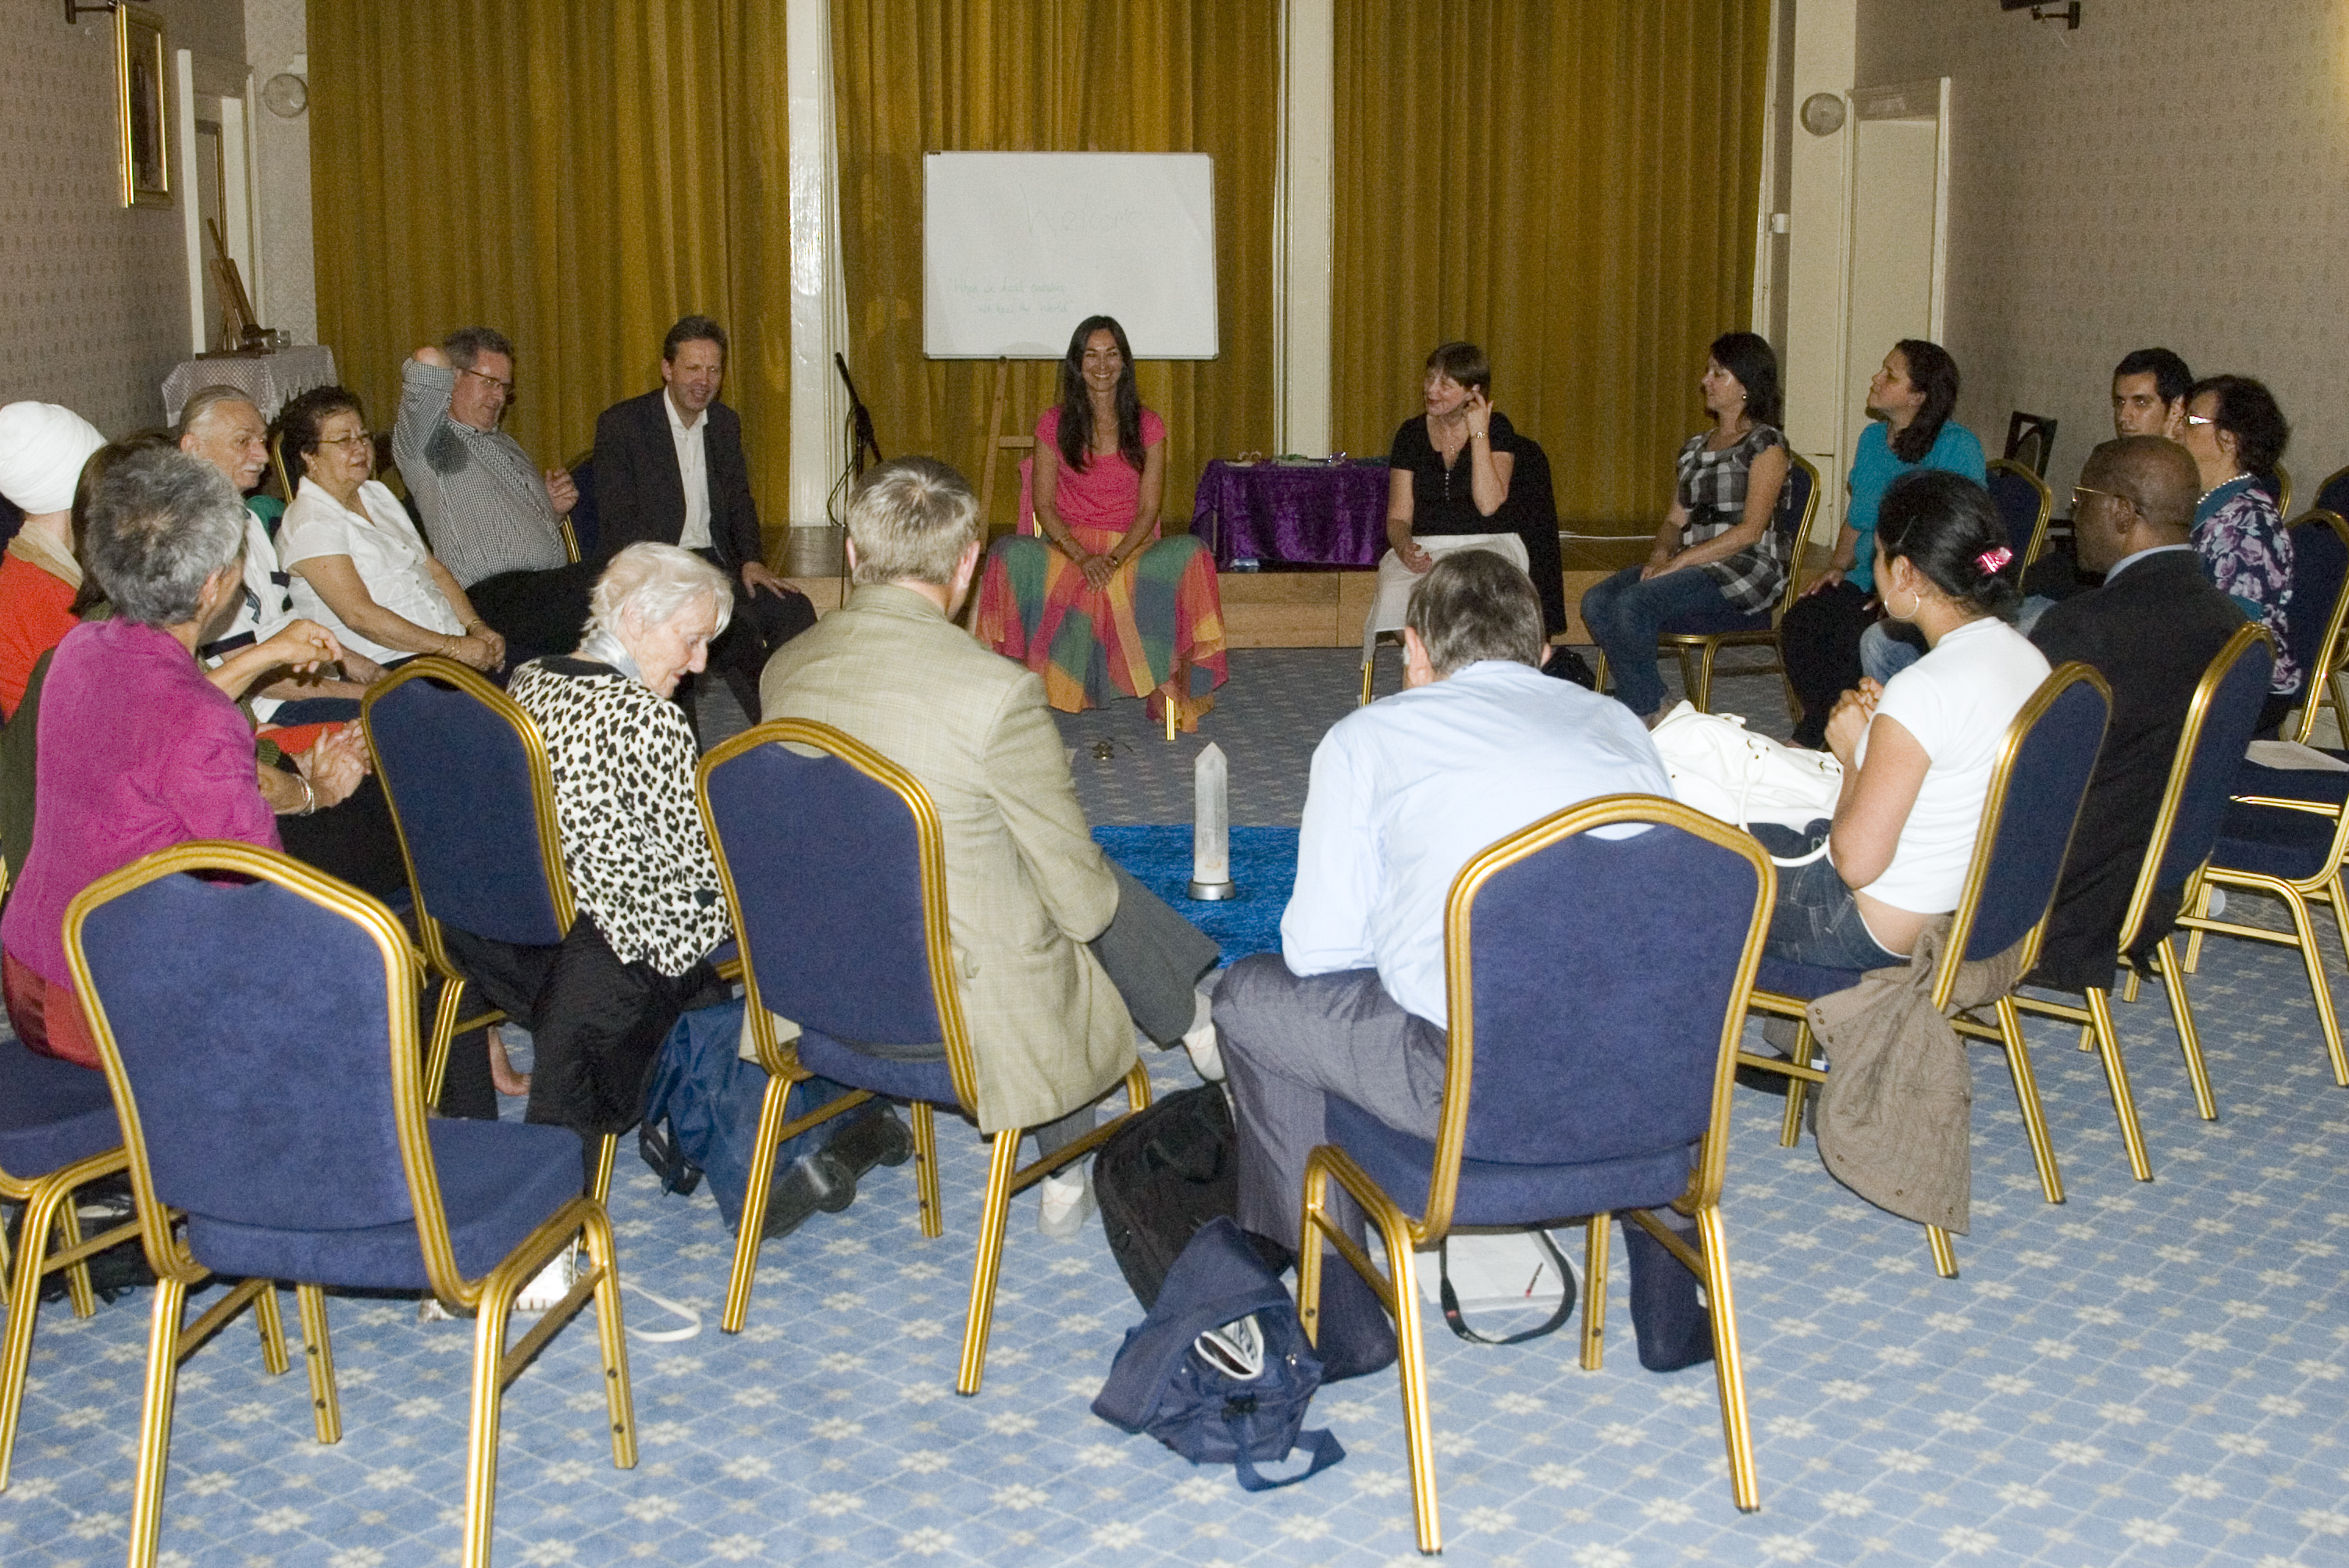 Guided Meditation and Discussion Led by Karen Szulakowska